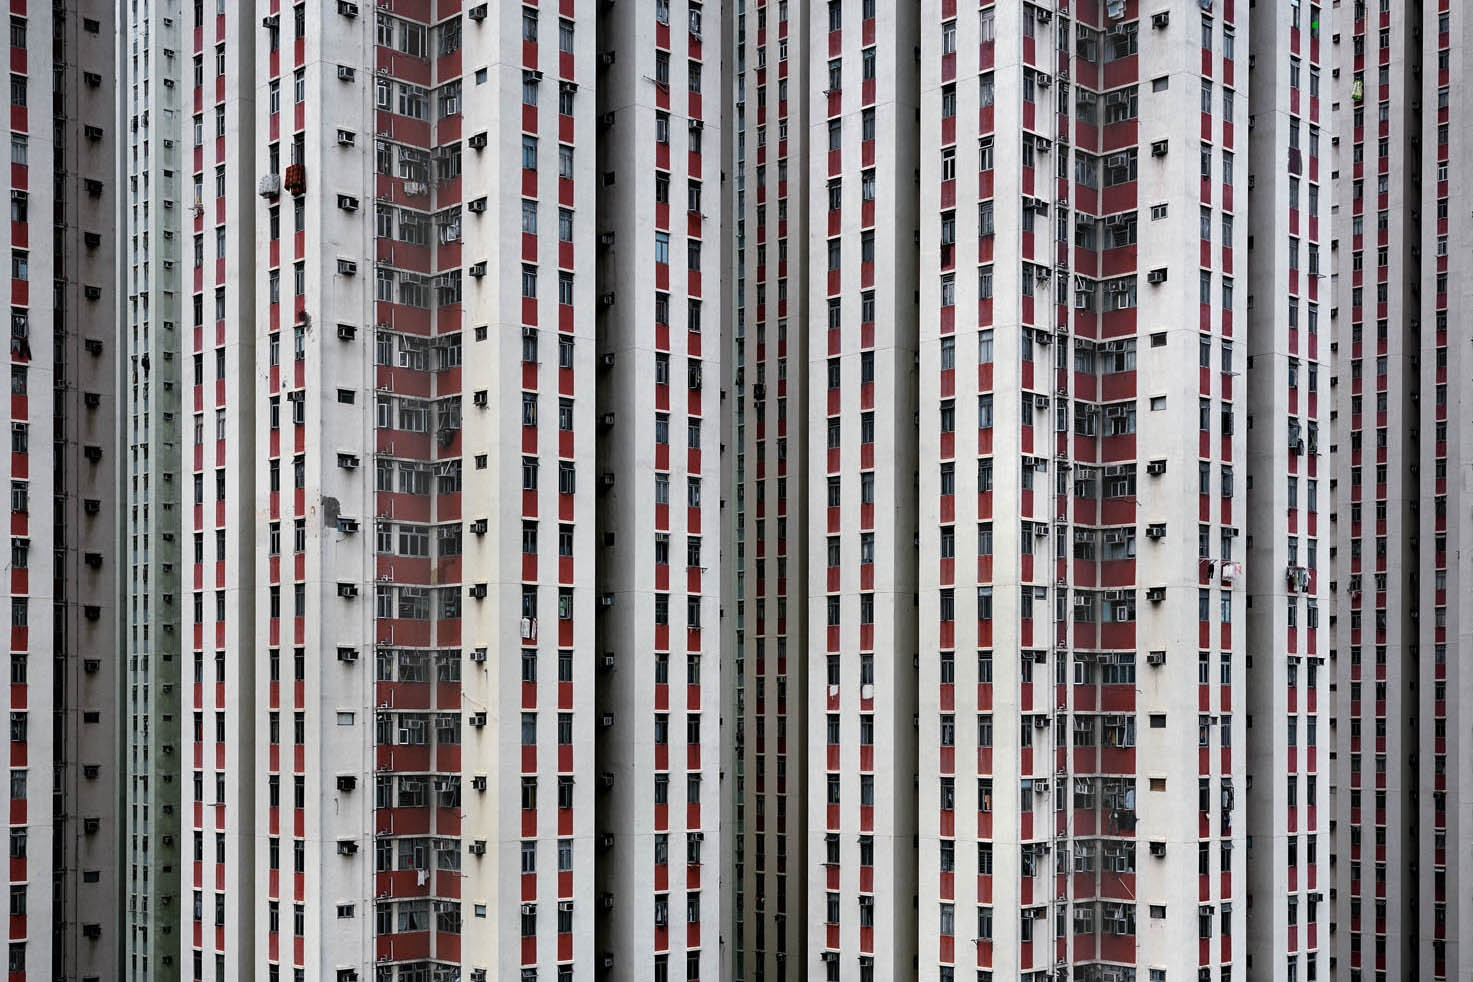 Michael Wolf Hong Kong Architecture Exhibition Buildings Multi color pink walls obituary death